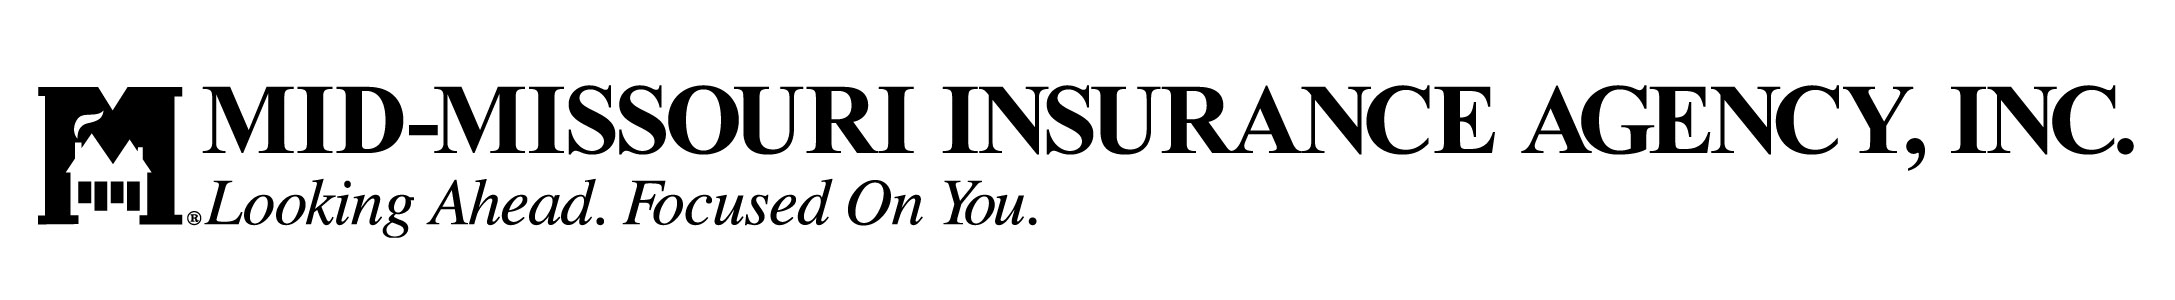 Mid-Missouri Insurance